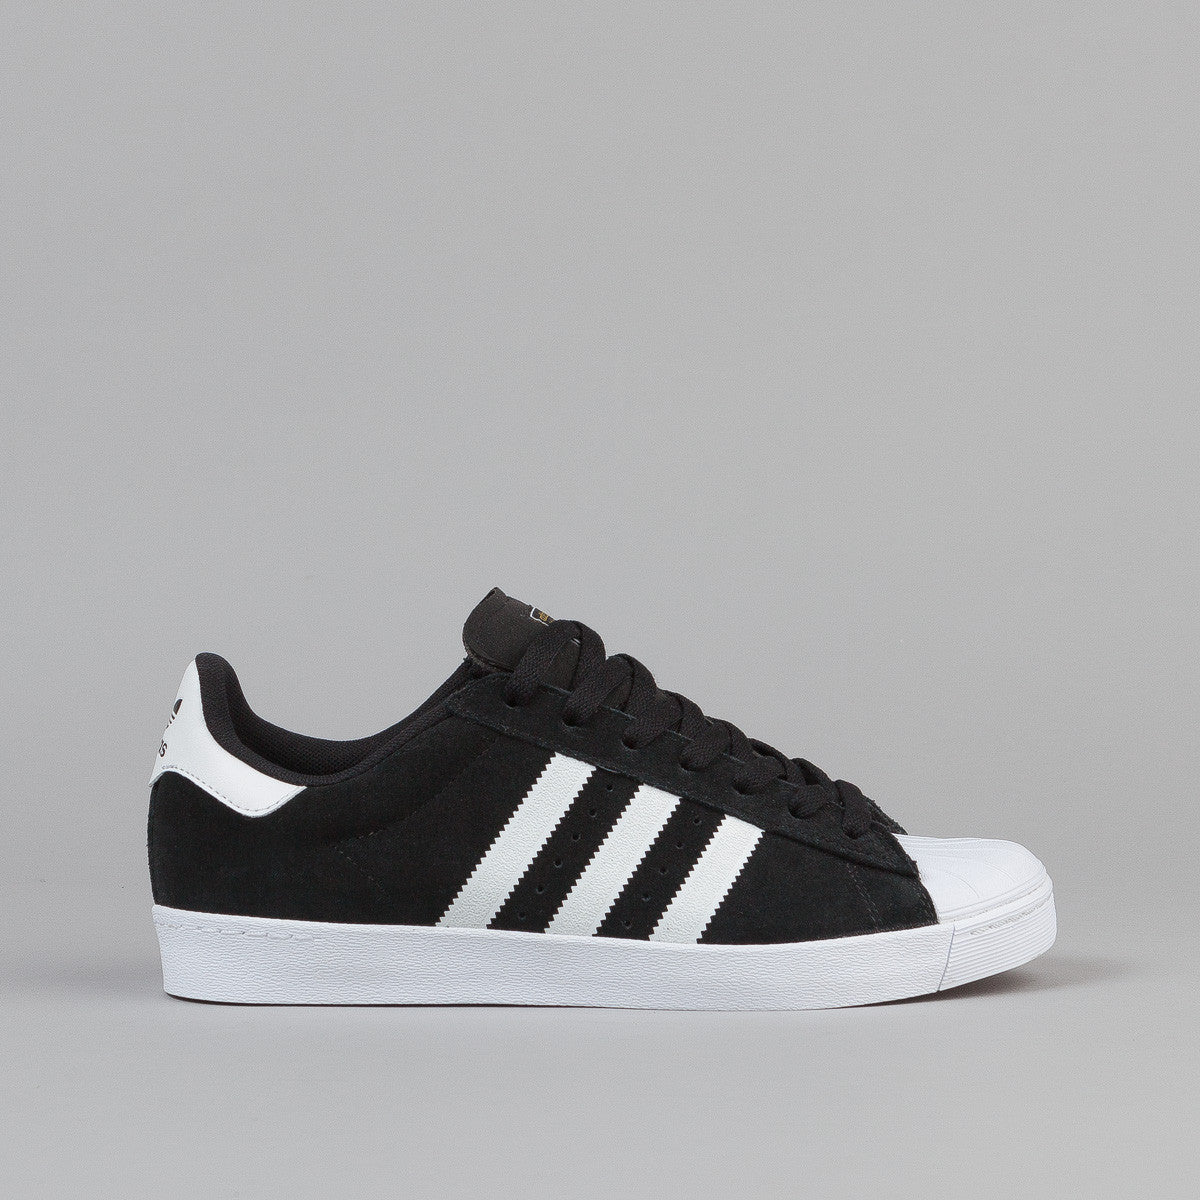 geflf adidas superstar vulc adv white & black shoes Buy Discount